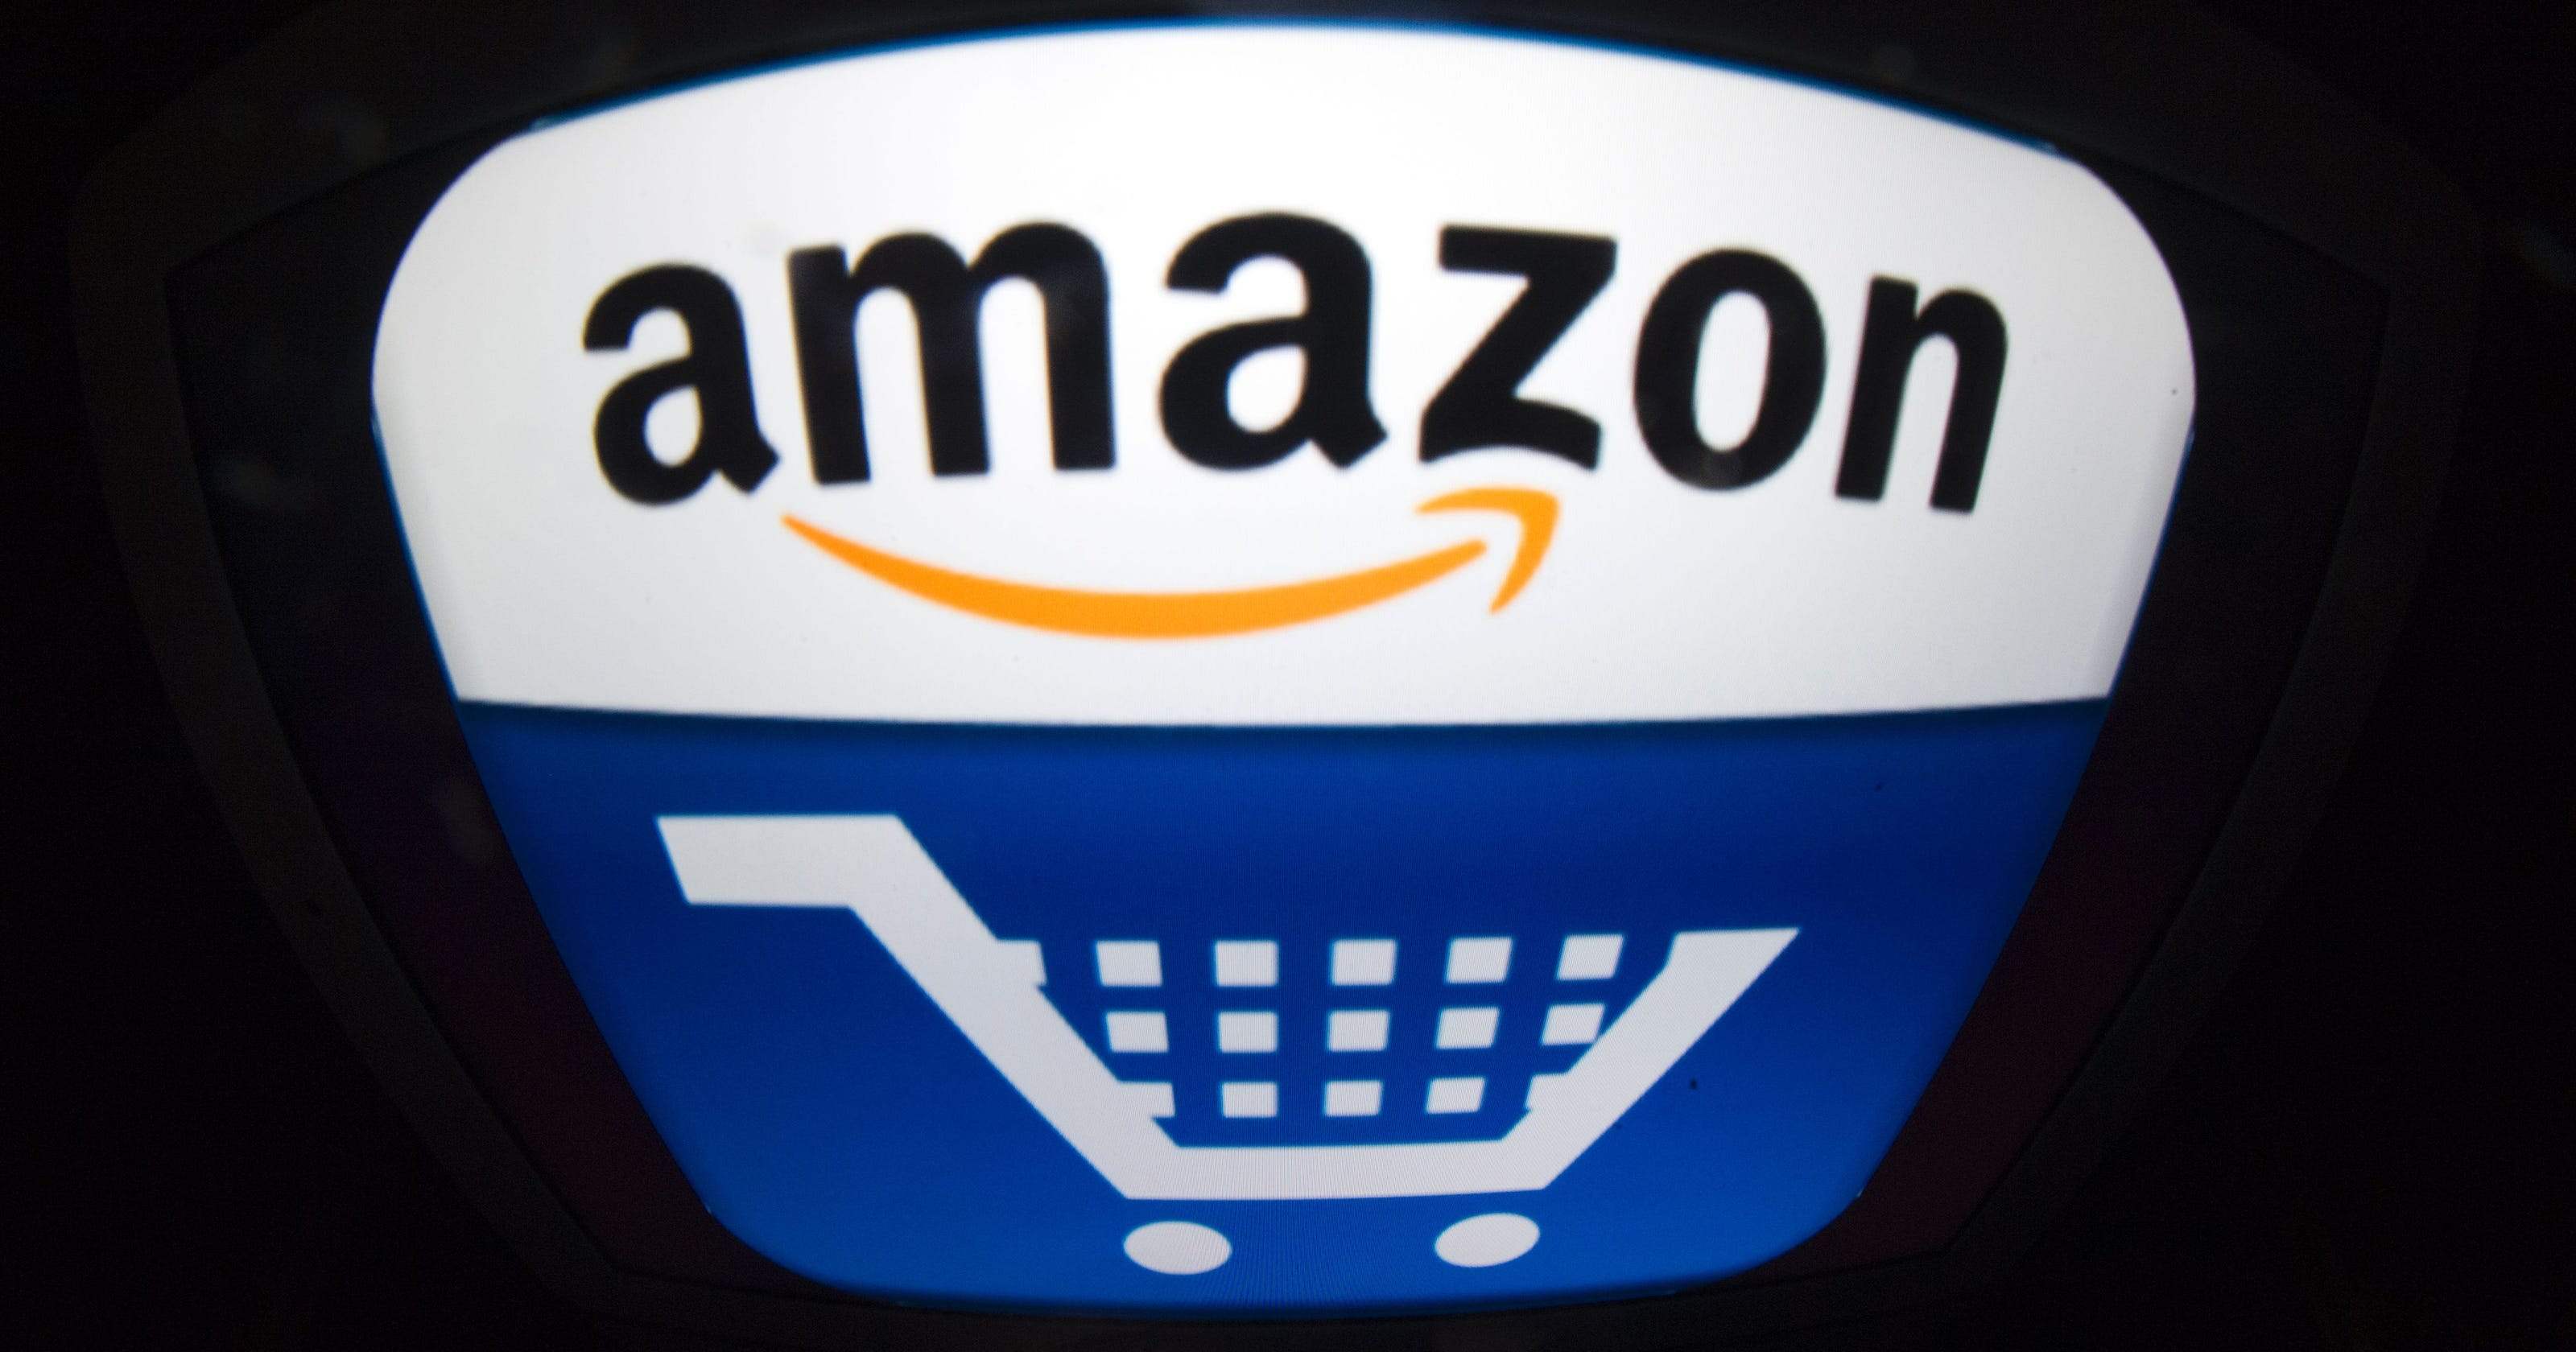 Amazon tests food stamps, another breach of Wal-Mart territory